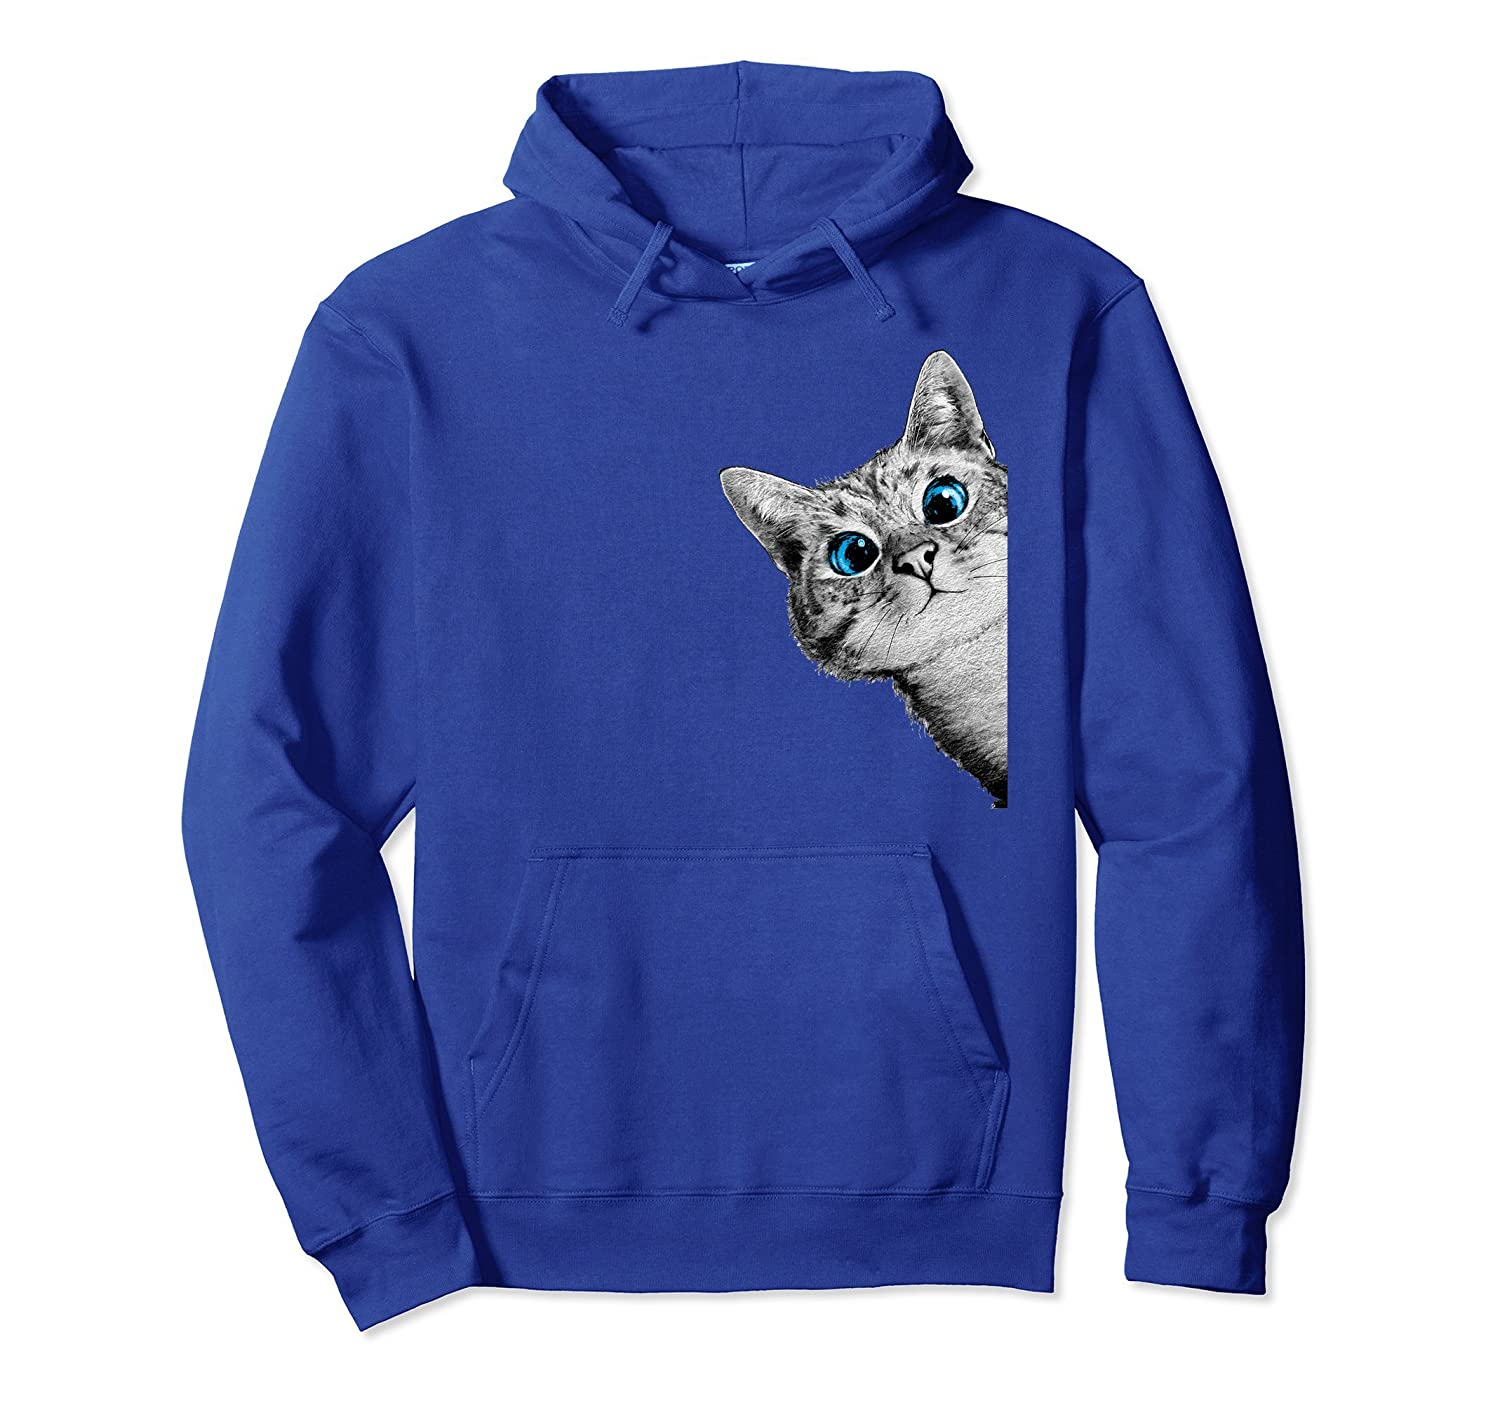 Cat Cute Face Hooded Sweatshirt-AZP